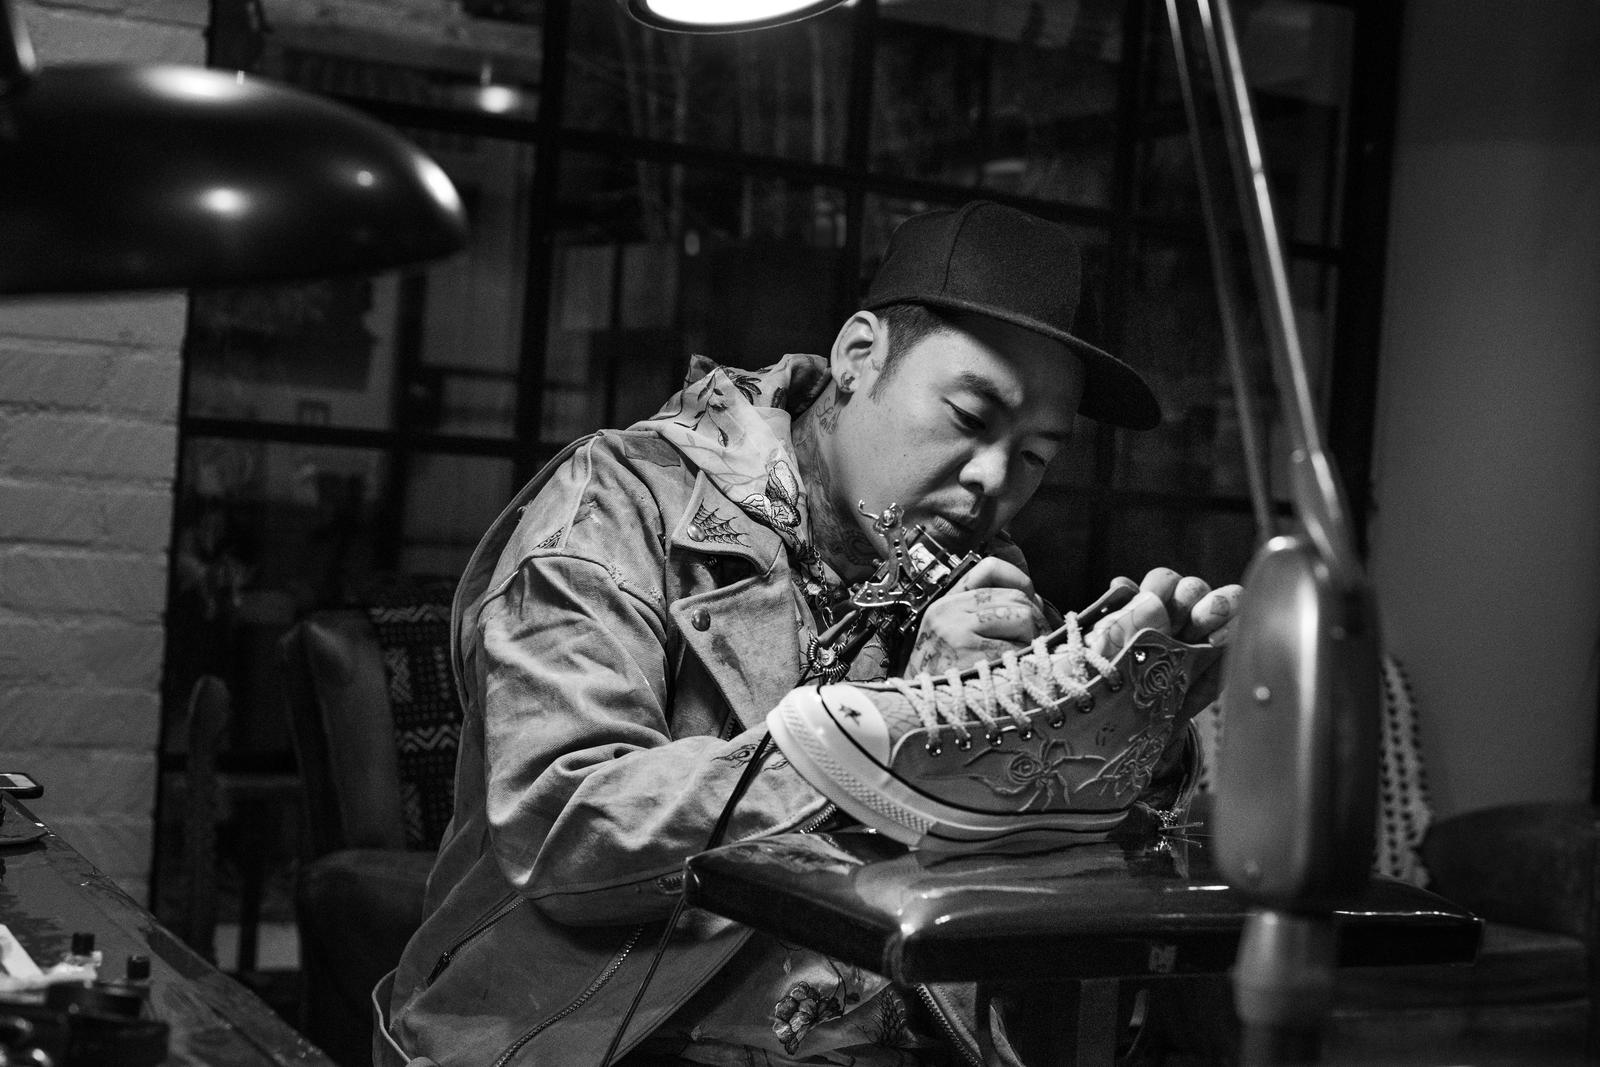 Converse and Dr. Woo Collaborate on Set of Limited Chuck 70s 9